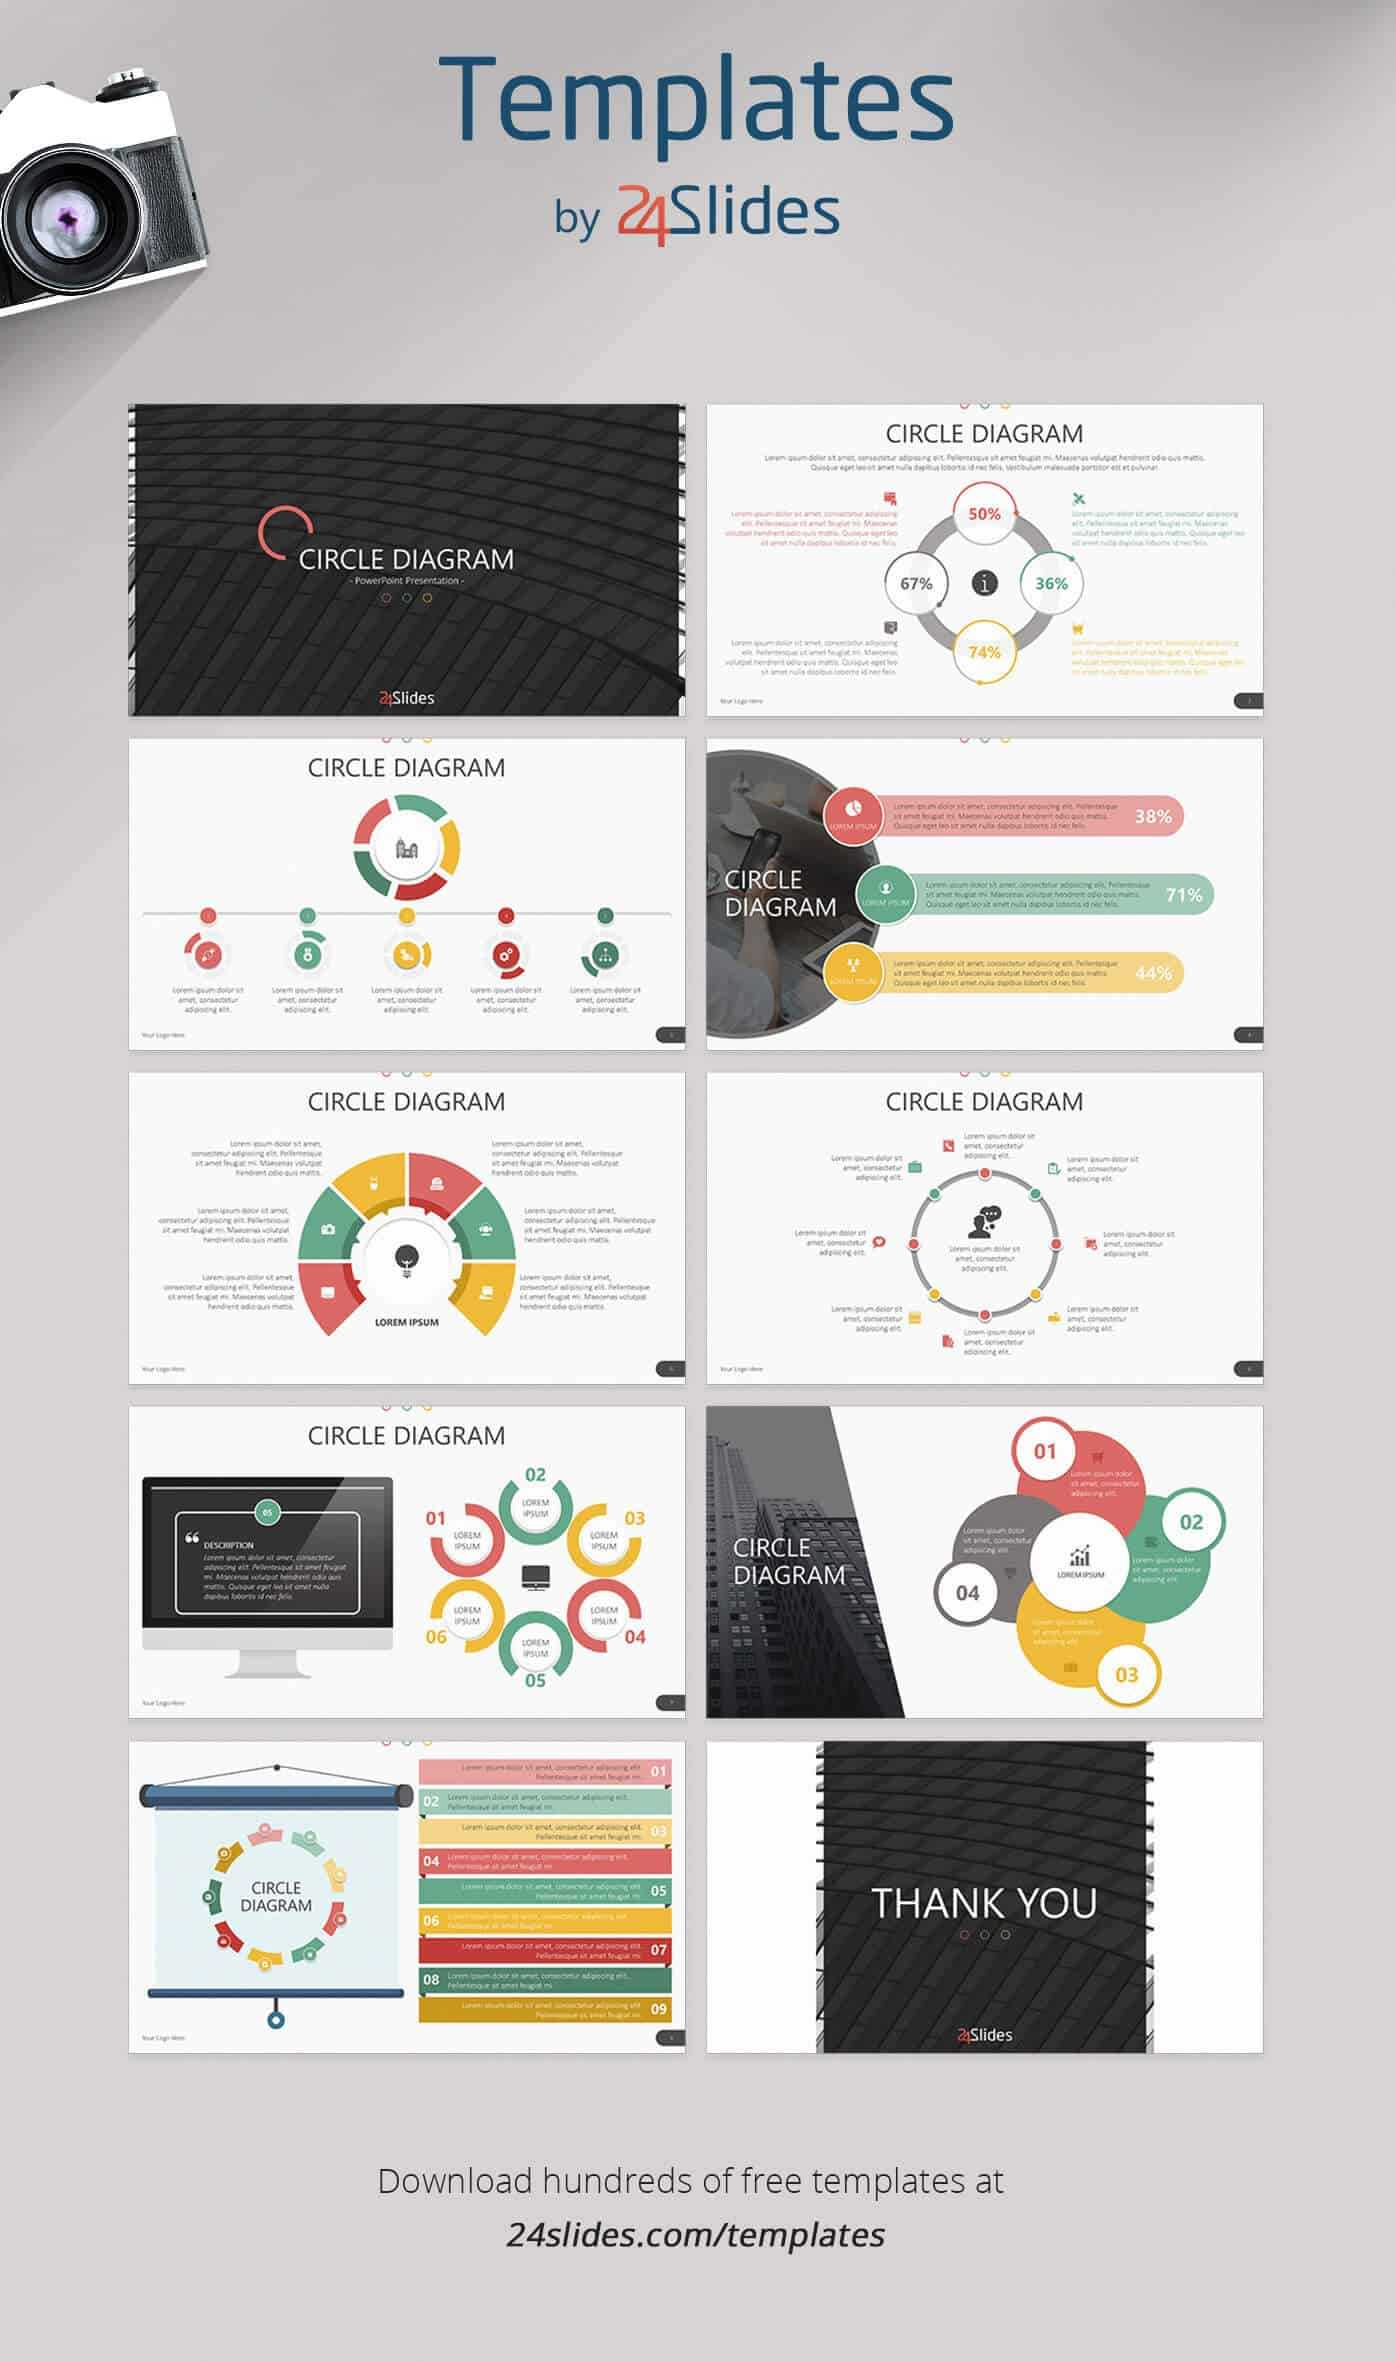 15 Fun And Colorful Free Powerpoint Templates | Present Better For Fun Powerpoint Templates Free Download